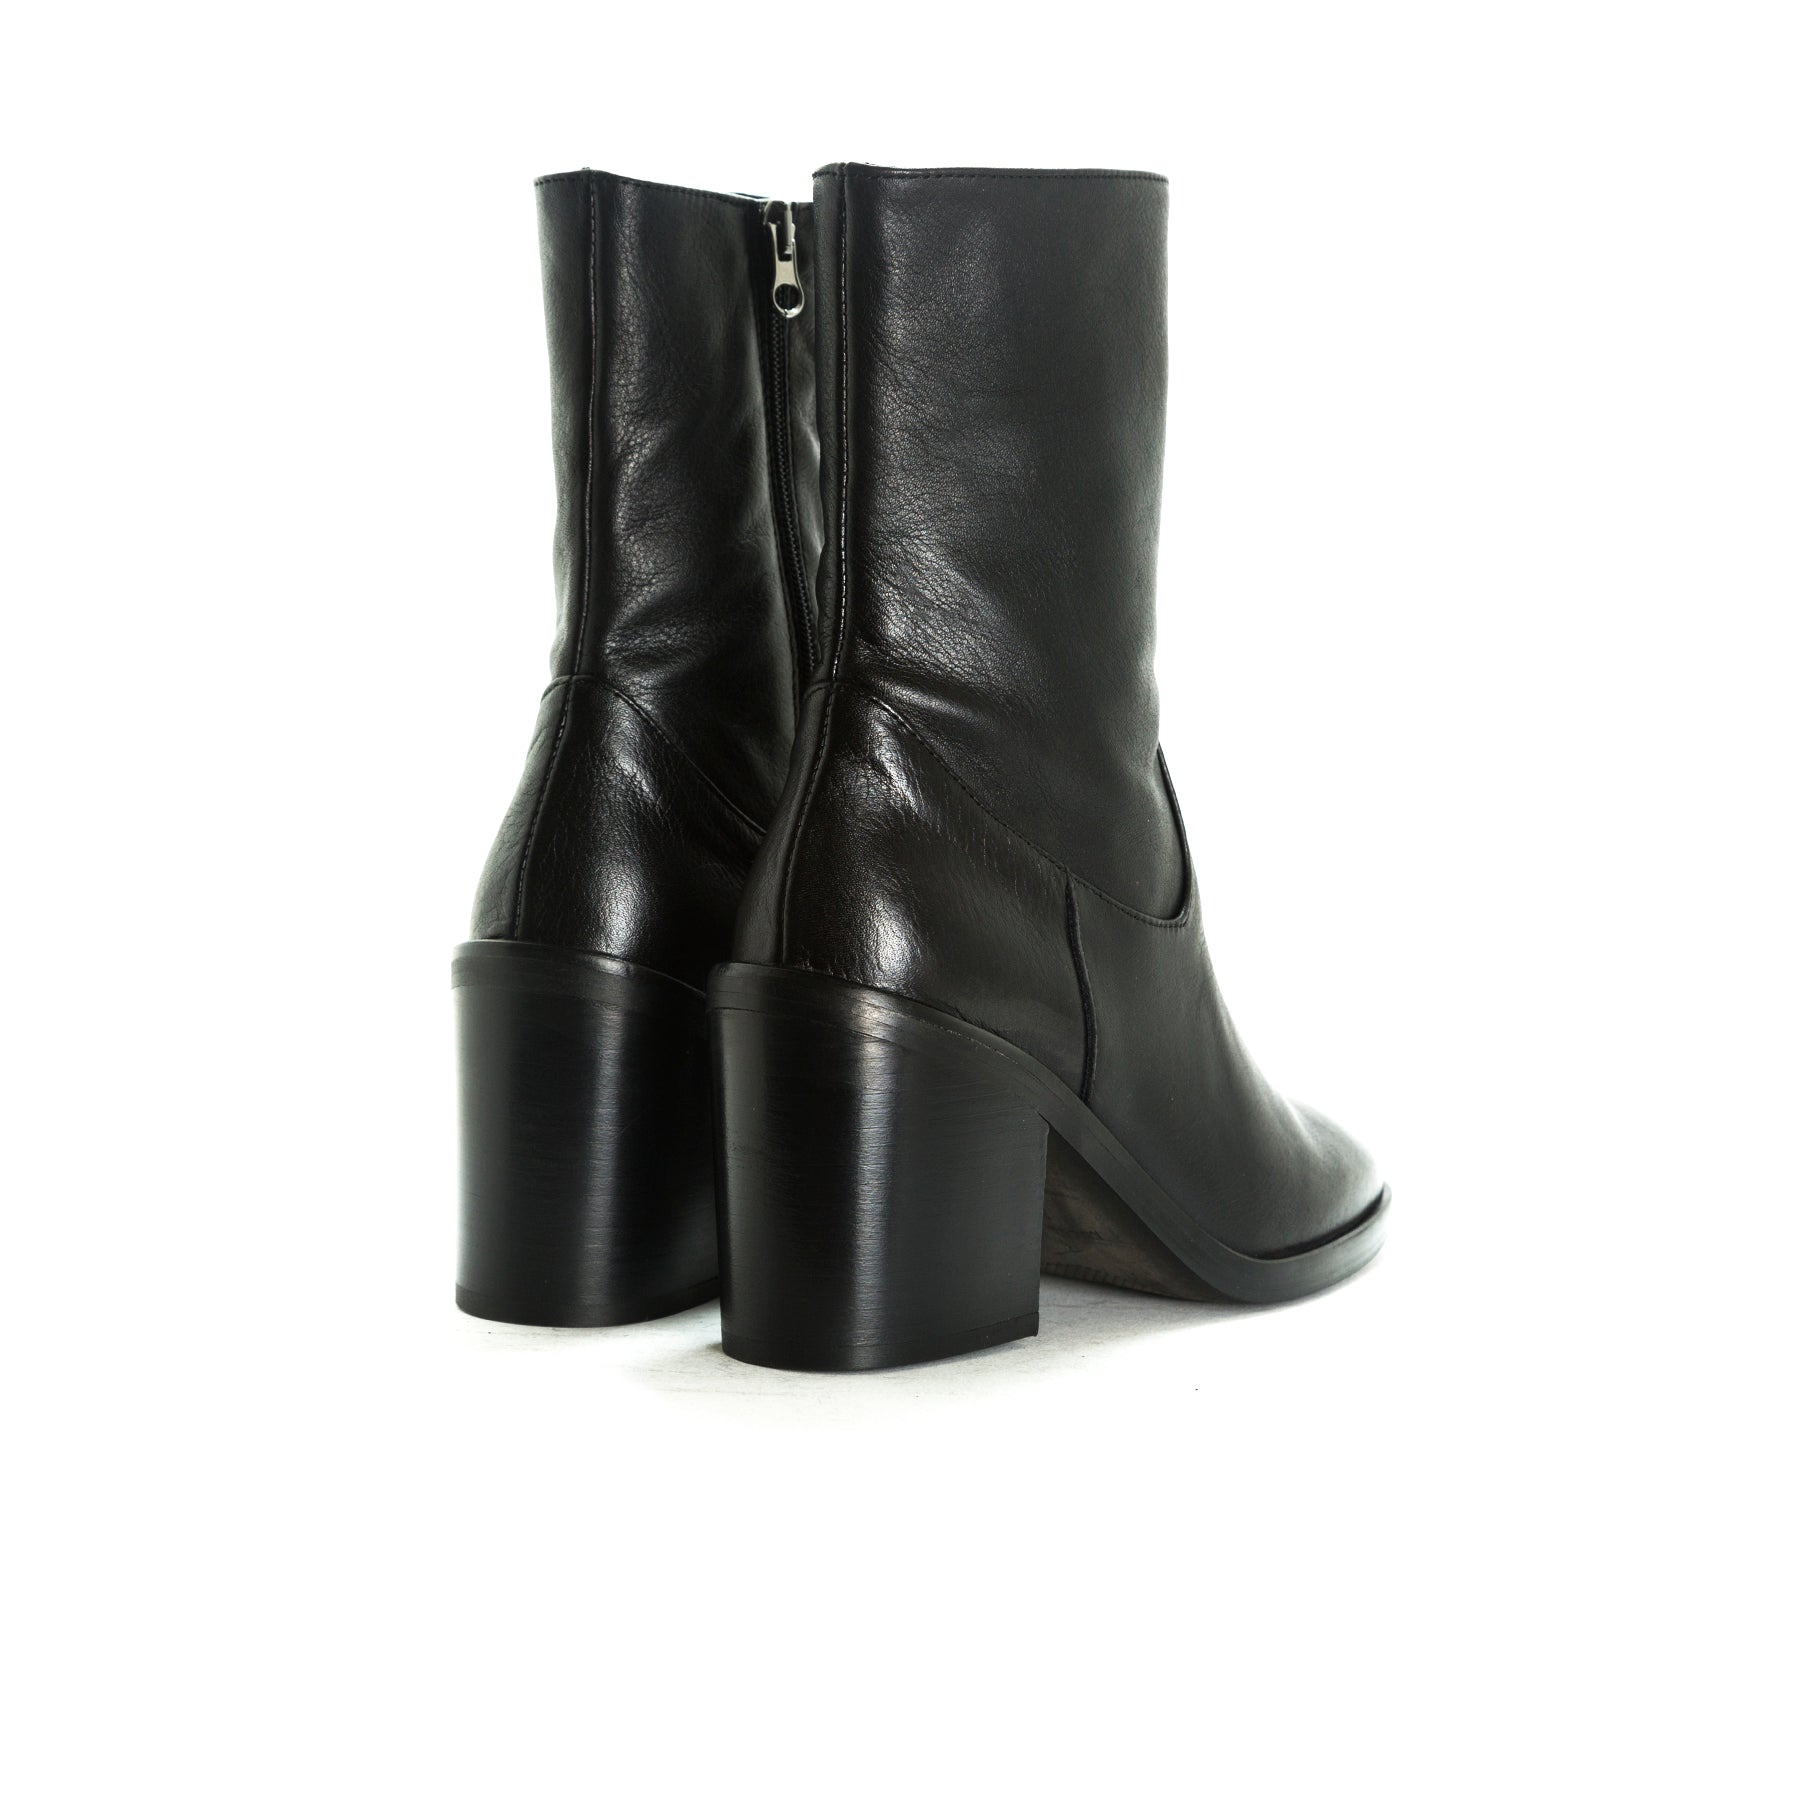 Maralik Black Leather Ankle Boots